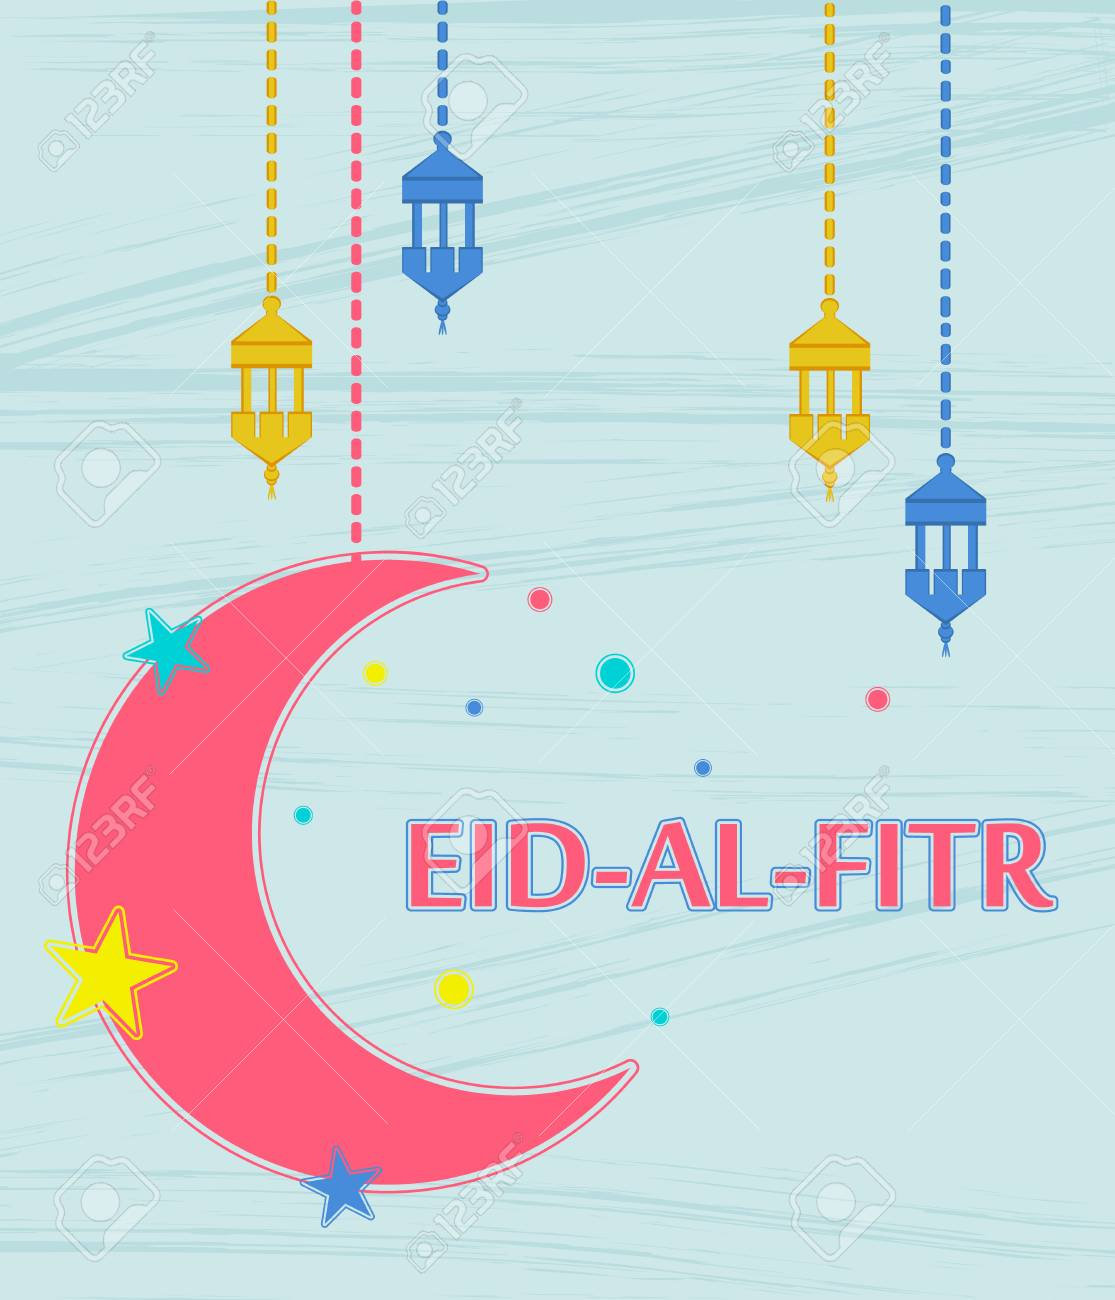 Eid Al Fitr Muslim Traditional Holiday That Marks The End Of